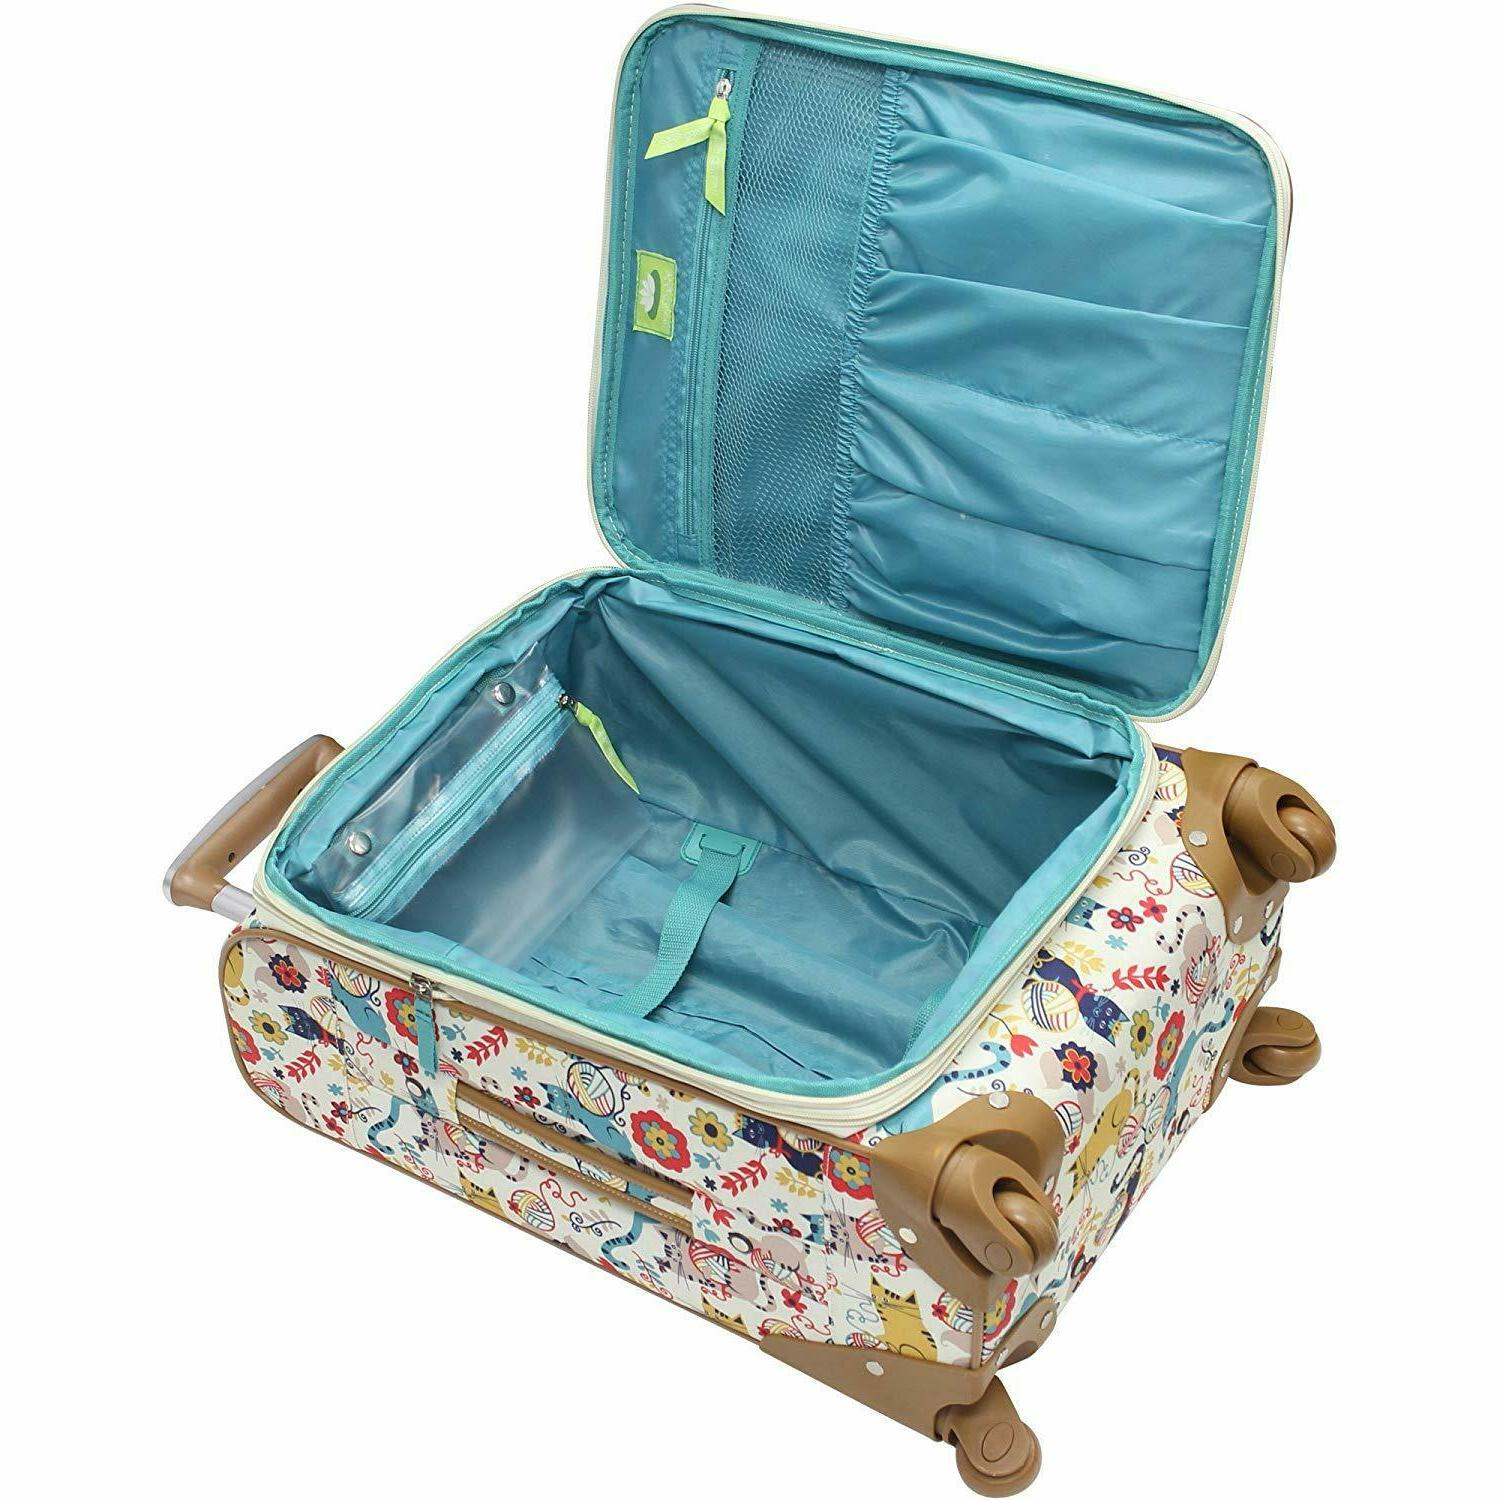 LILY BLOOM FURRY LUGGAGE SUITCASE PIECE COLLECTION